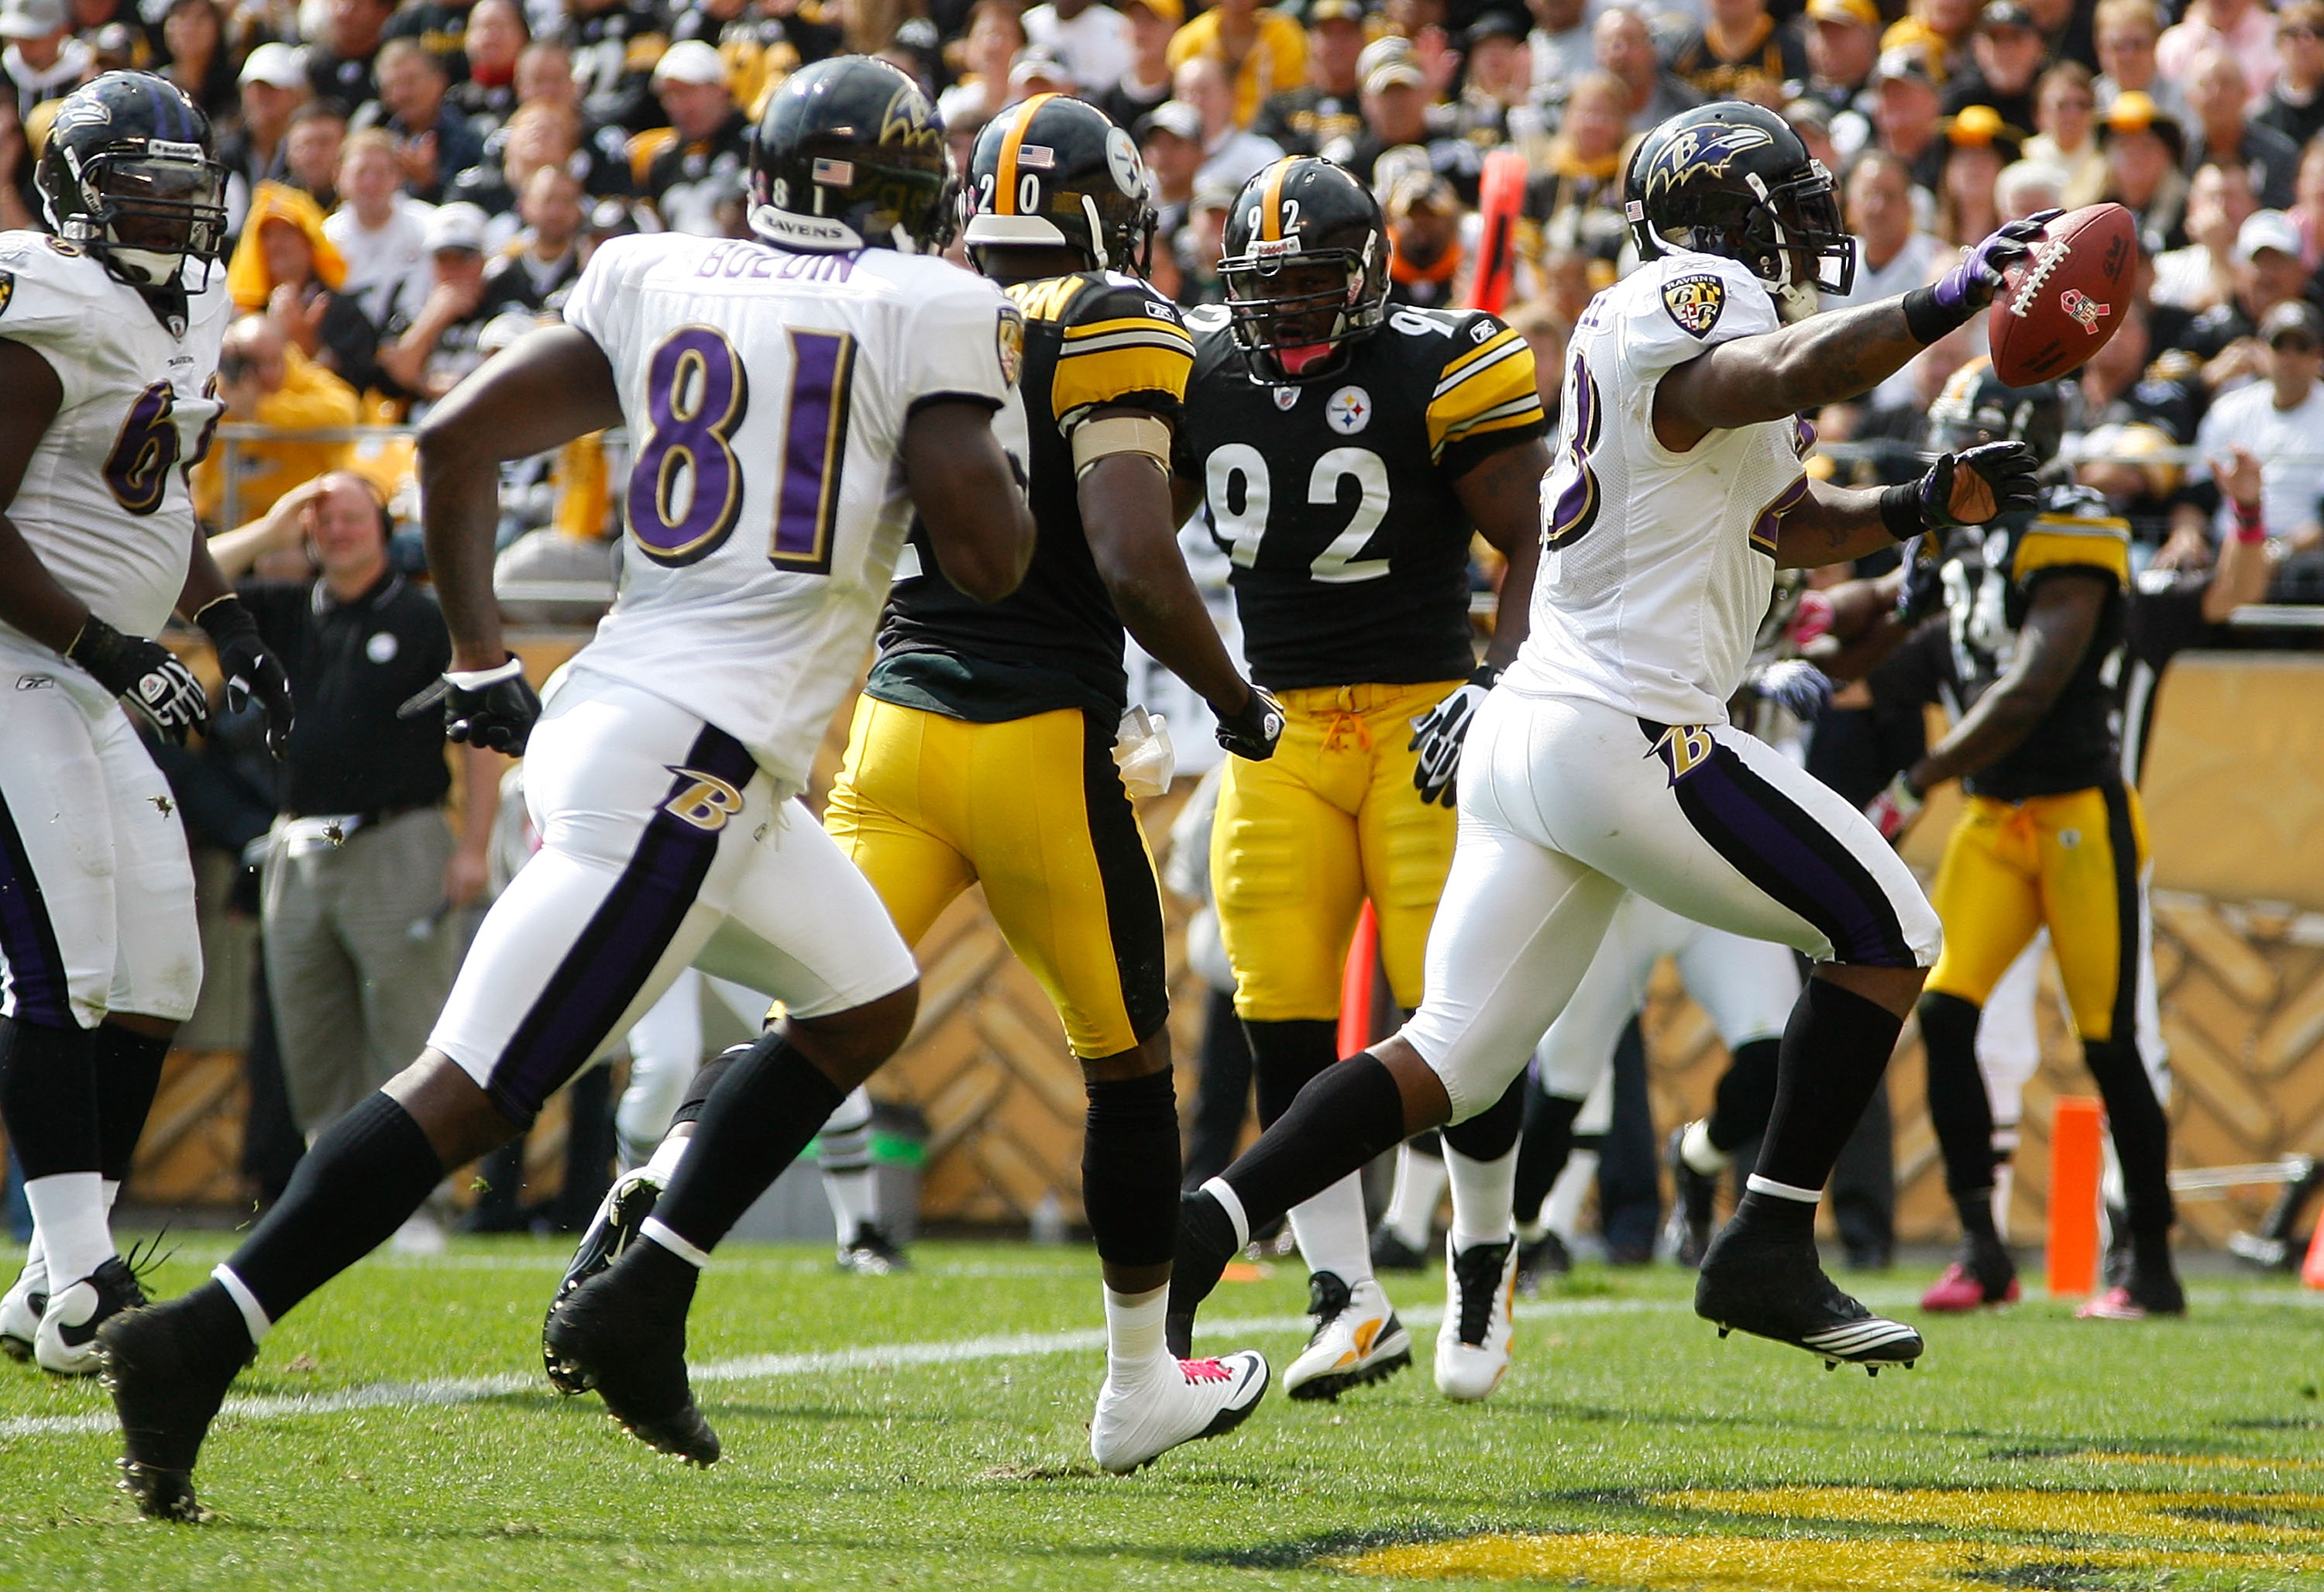 PITTSBURGH - OCTOBER 03:  Willis McGahee #23 of the Baltimore Ravens runs in for a touchdown against the Pittsburgh Steelers during the game on October 3, 2010 at Heinz Field in Pittsburgh, Pennsylvania.  (Photo by Jared Wickerham/Getty Images)